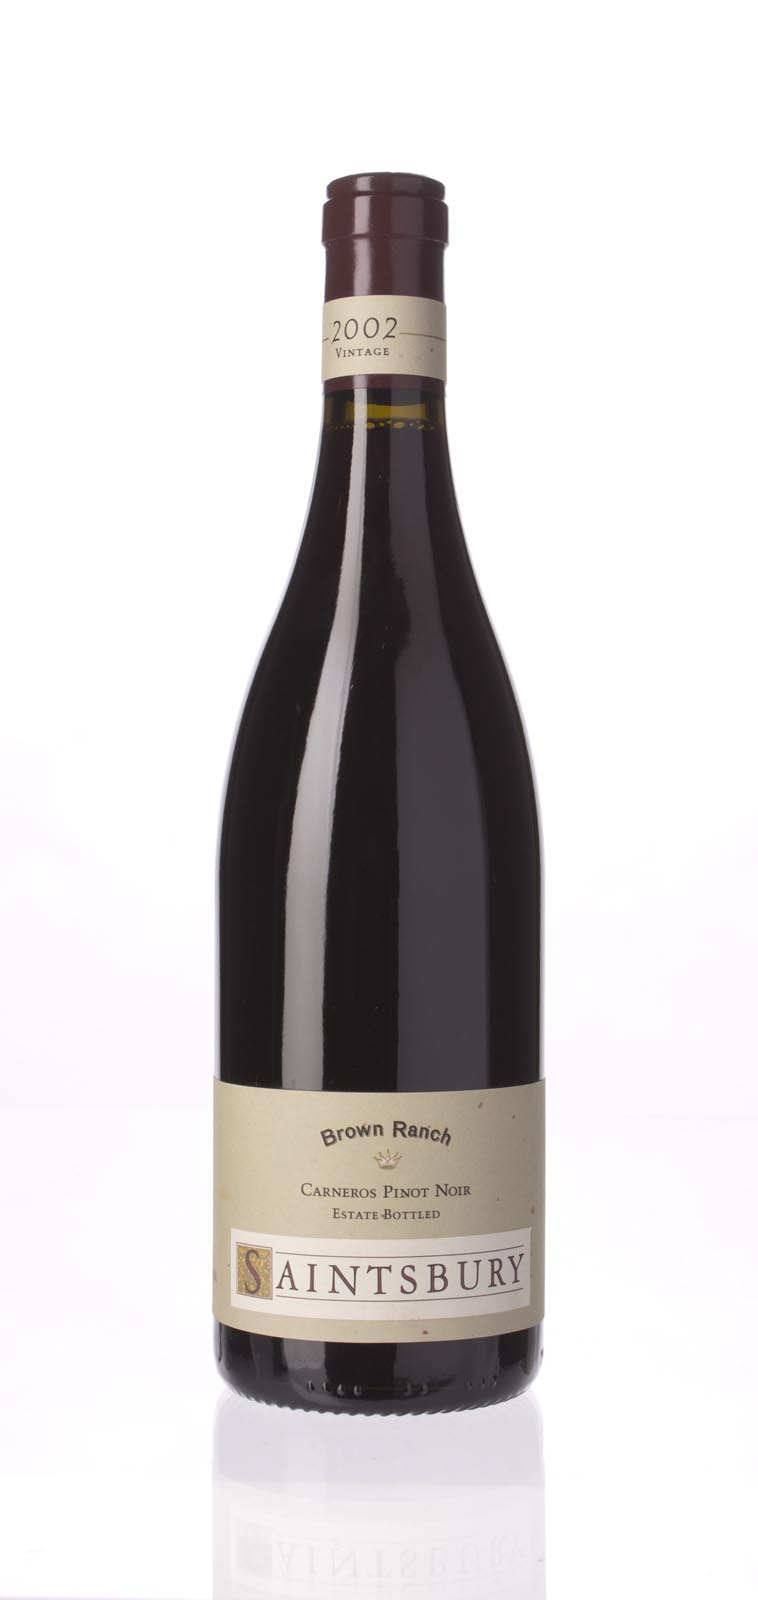 Saintsbury Pinot Noir Brown Ranch 2002, 750mL (ST92) from The BPW - Merchants of rare and fine wines.